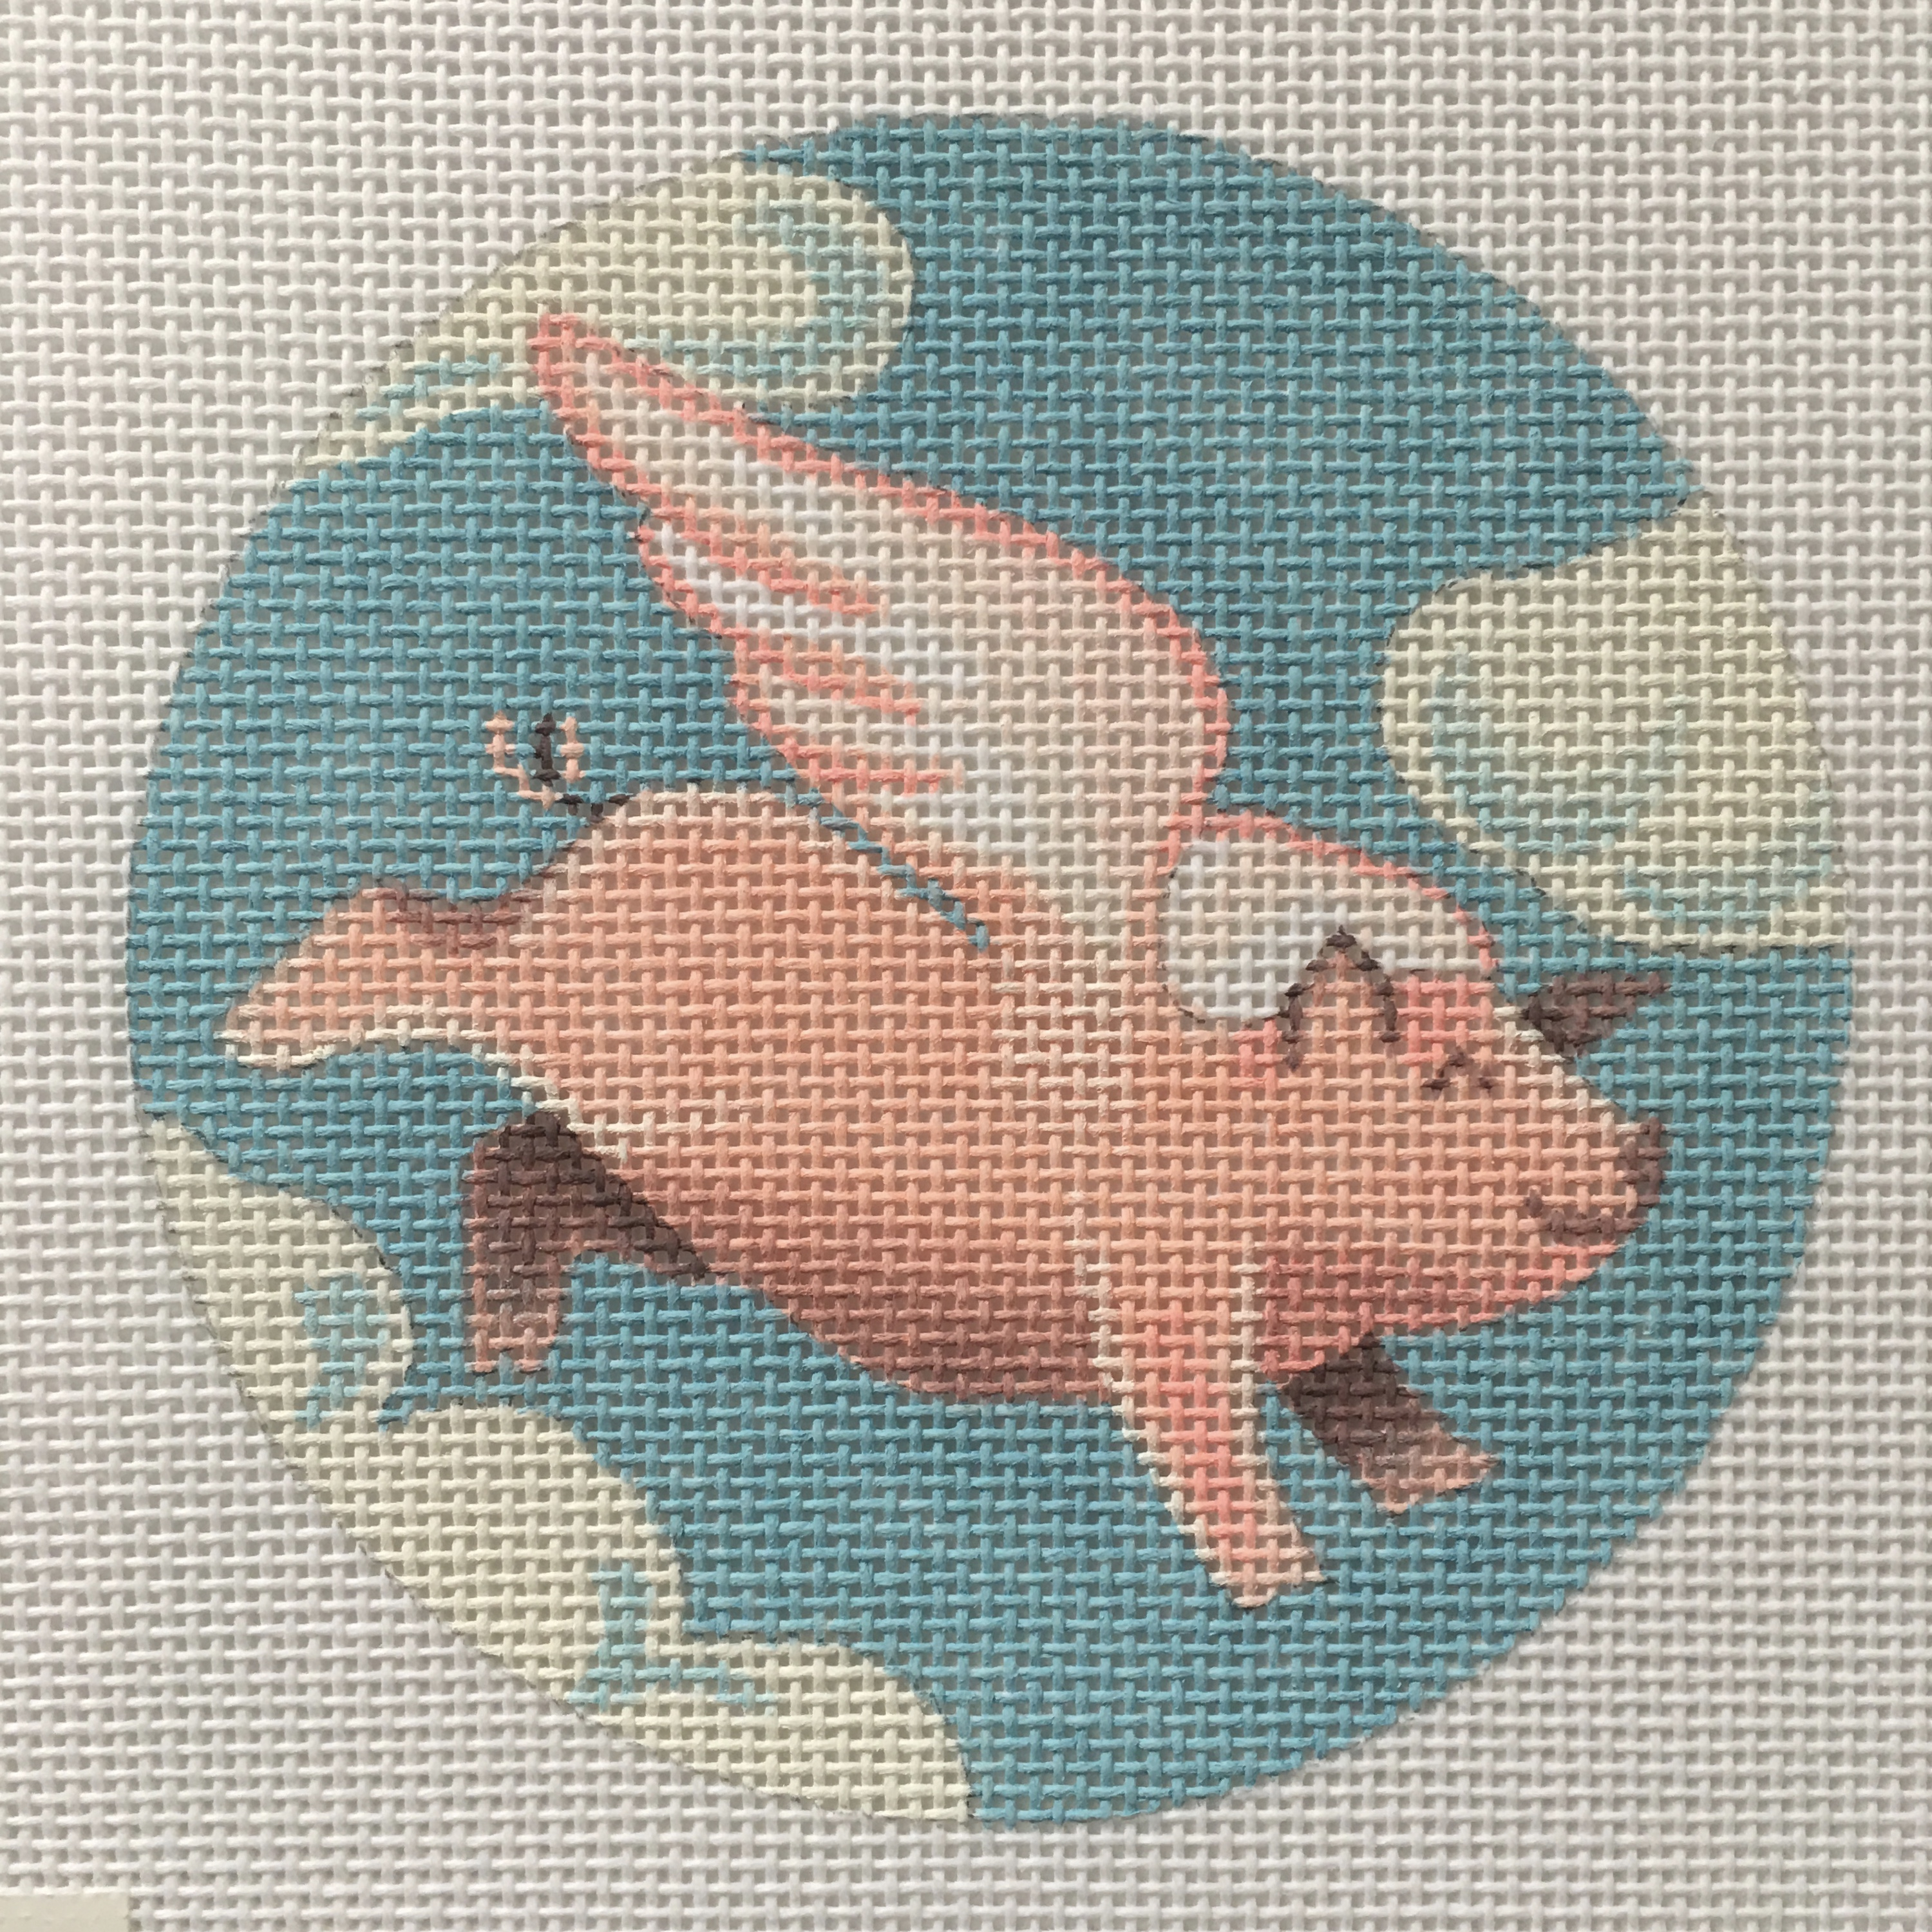 Flying Pig w/ Clouds Christmas Round by Pepperberry Designs